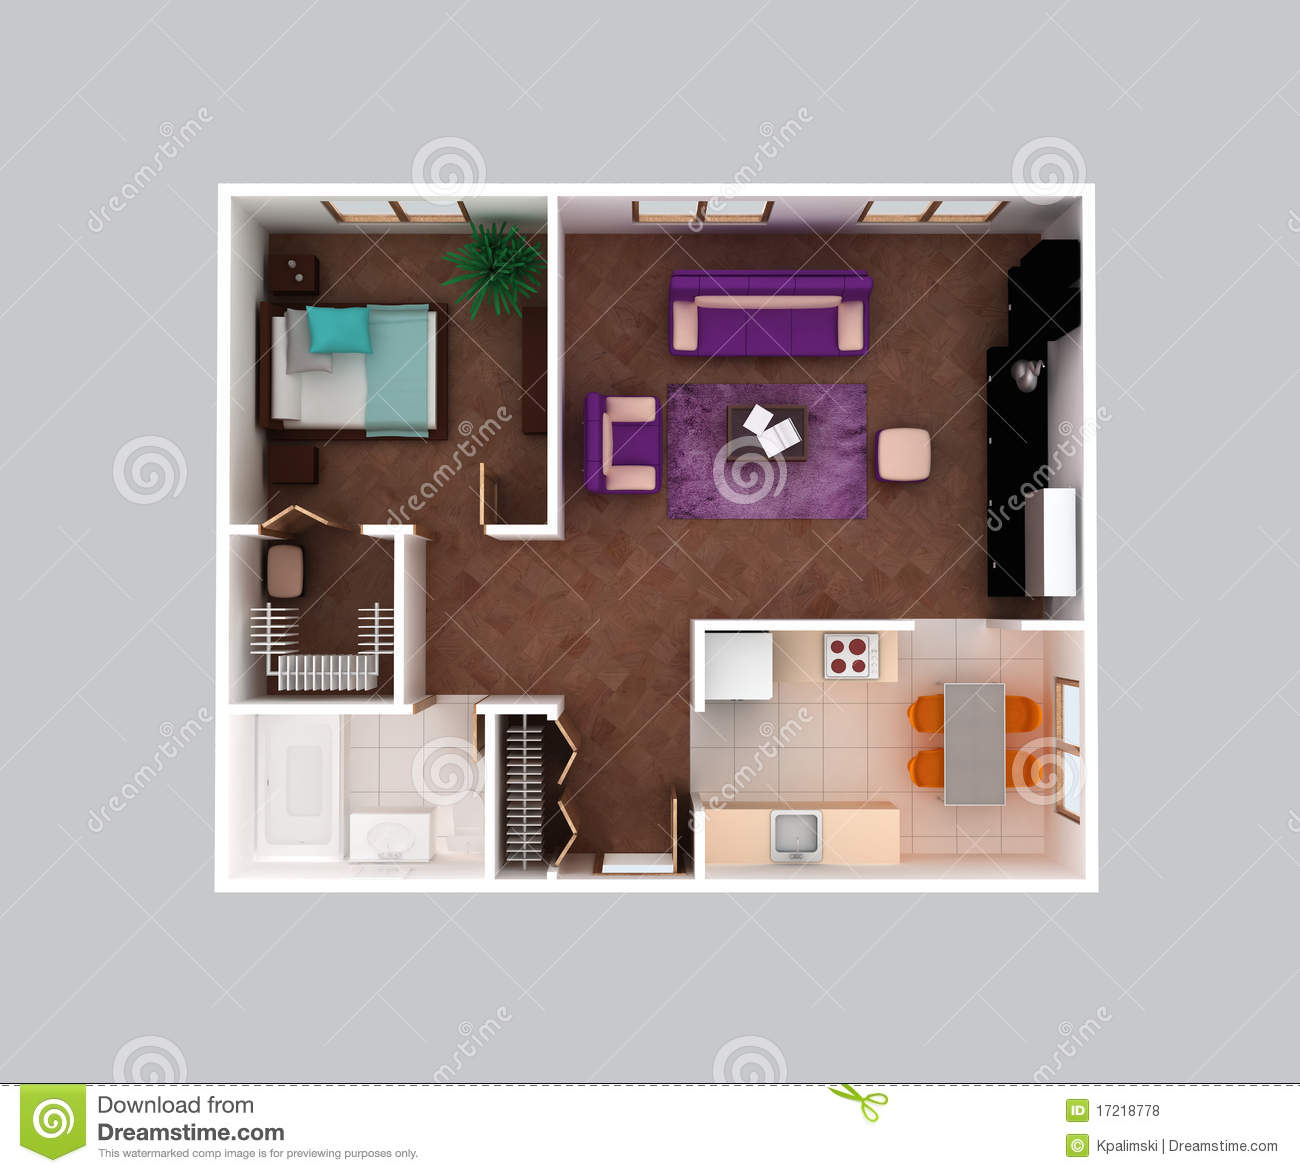 Conception la maison du plan d 39 tage d 39 appartement 3d for Appartement 3d gratuit